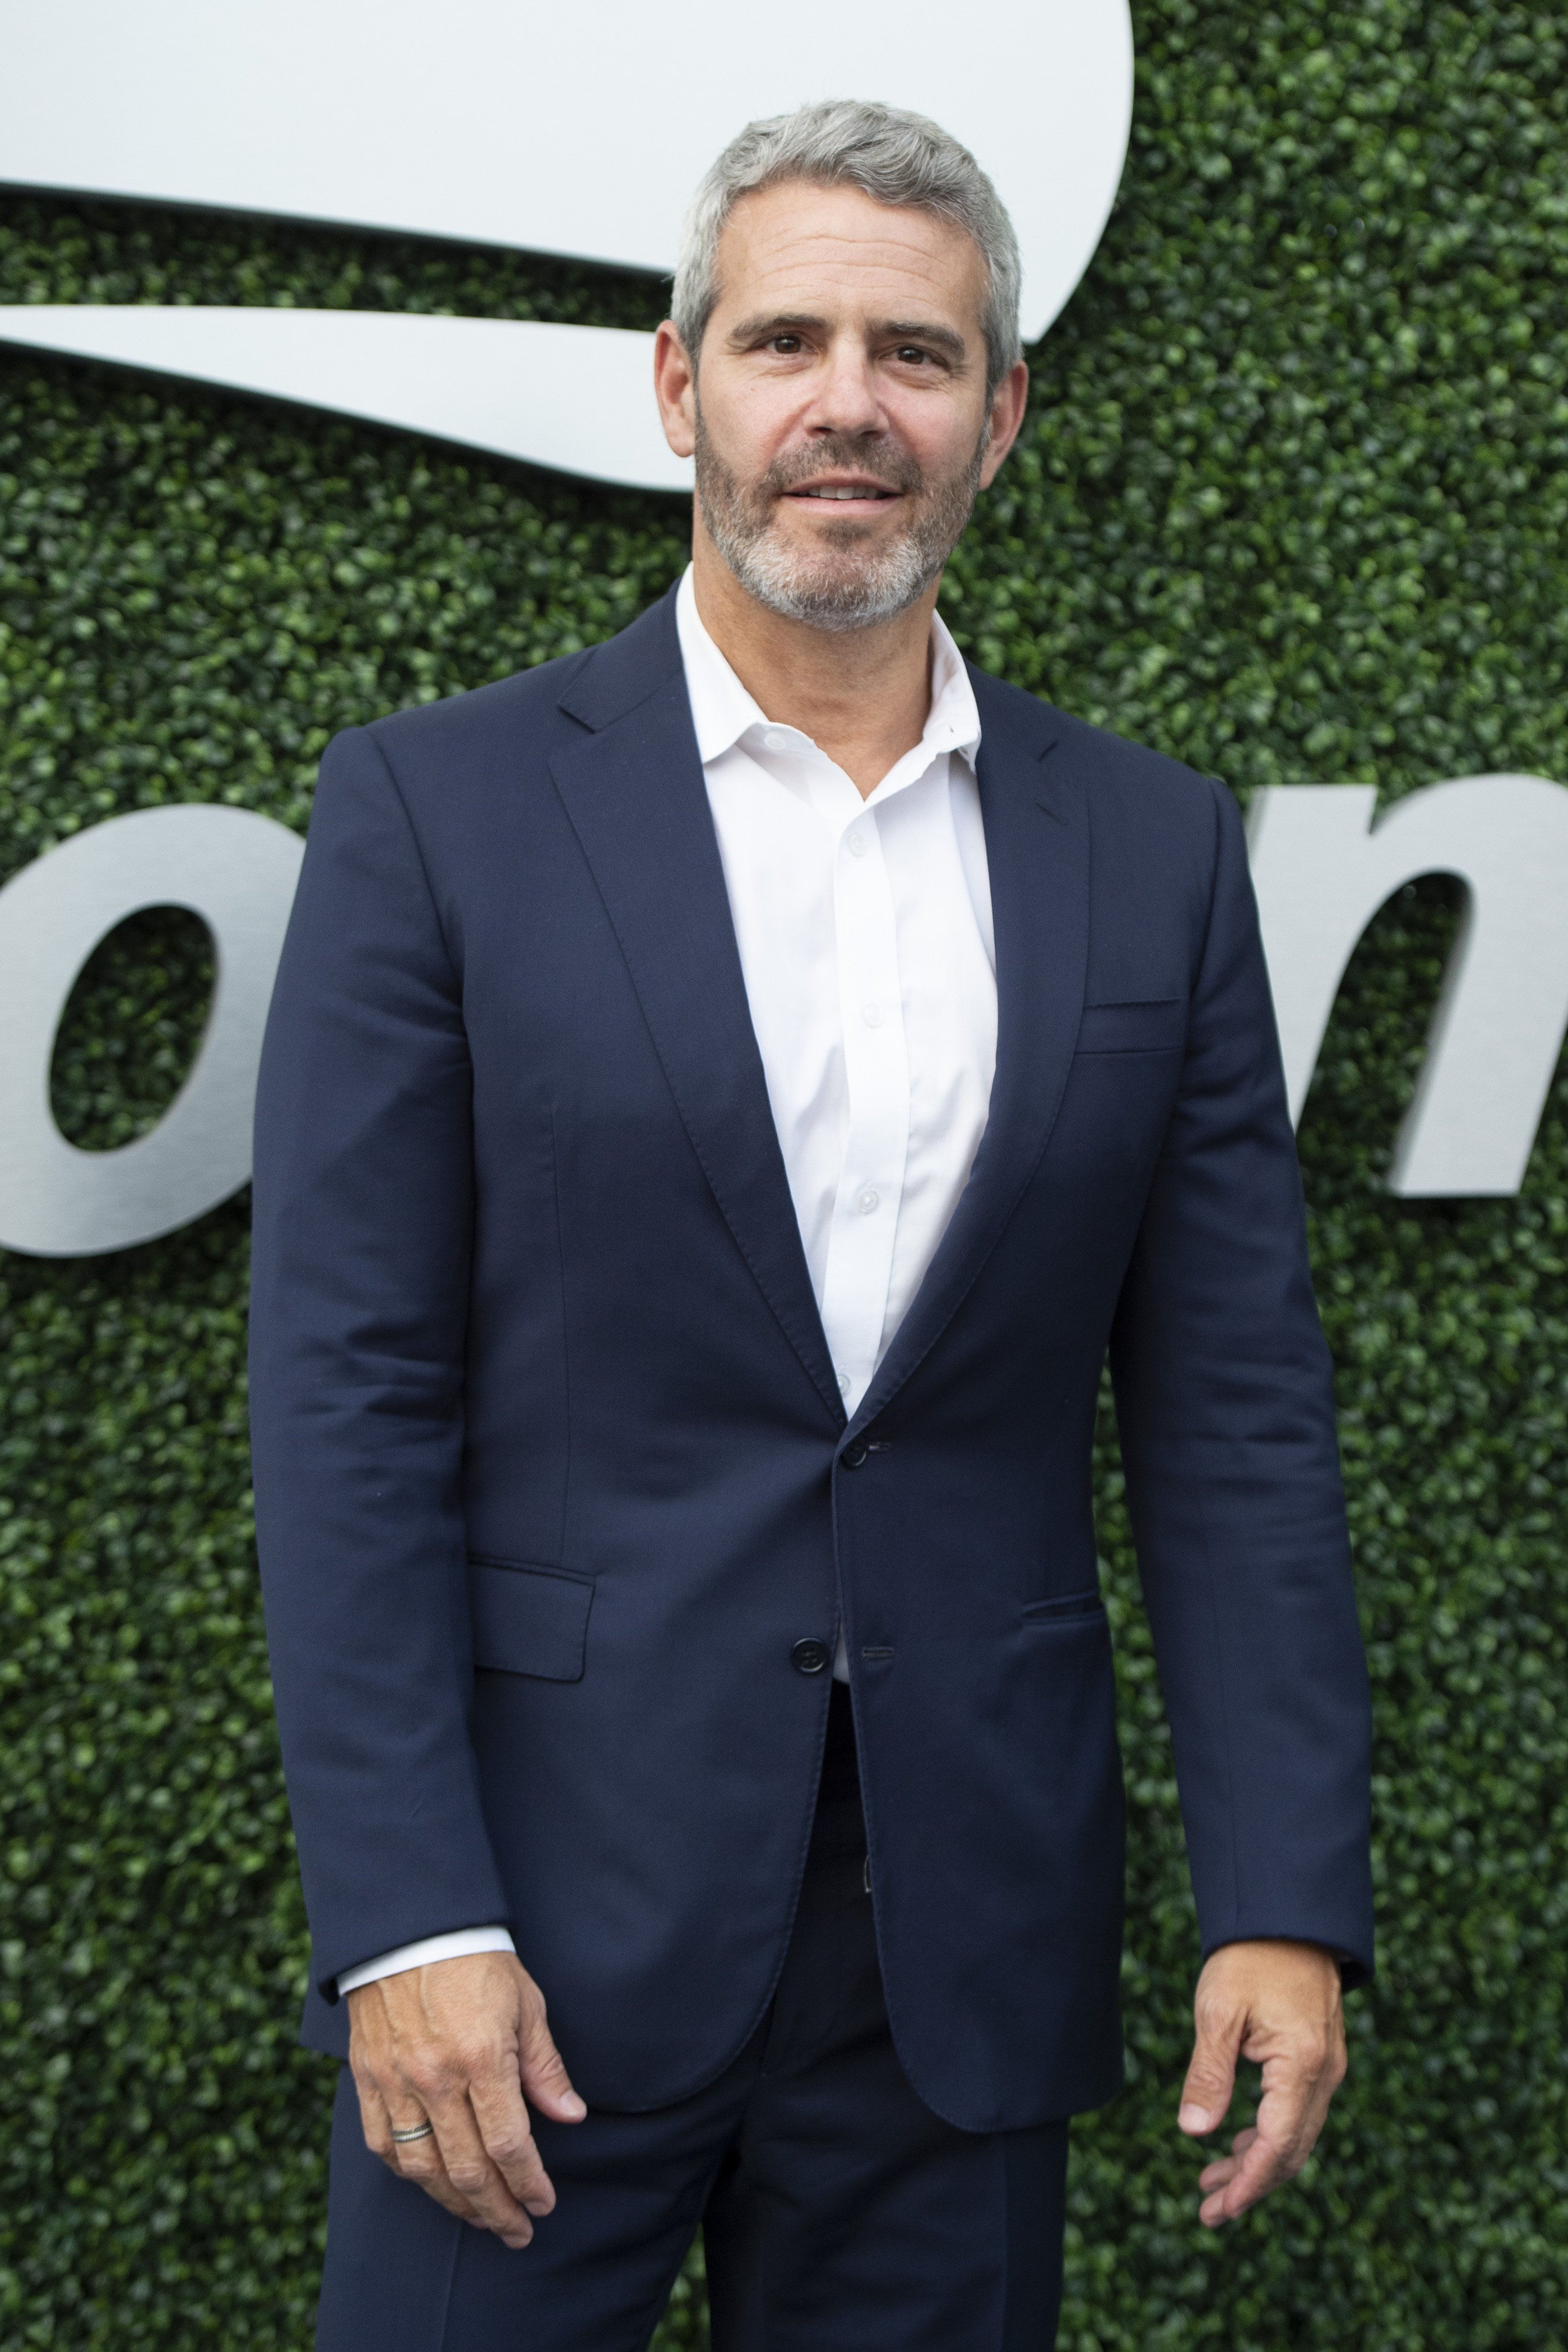 Andy Cohen at the US Open on September 5, 2019 in New York City | Photo: Getty Images